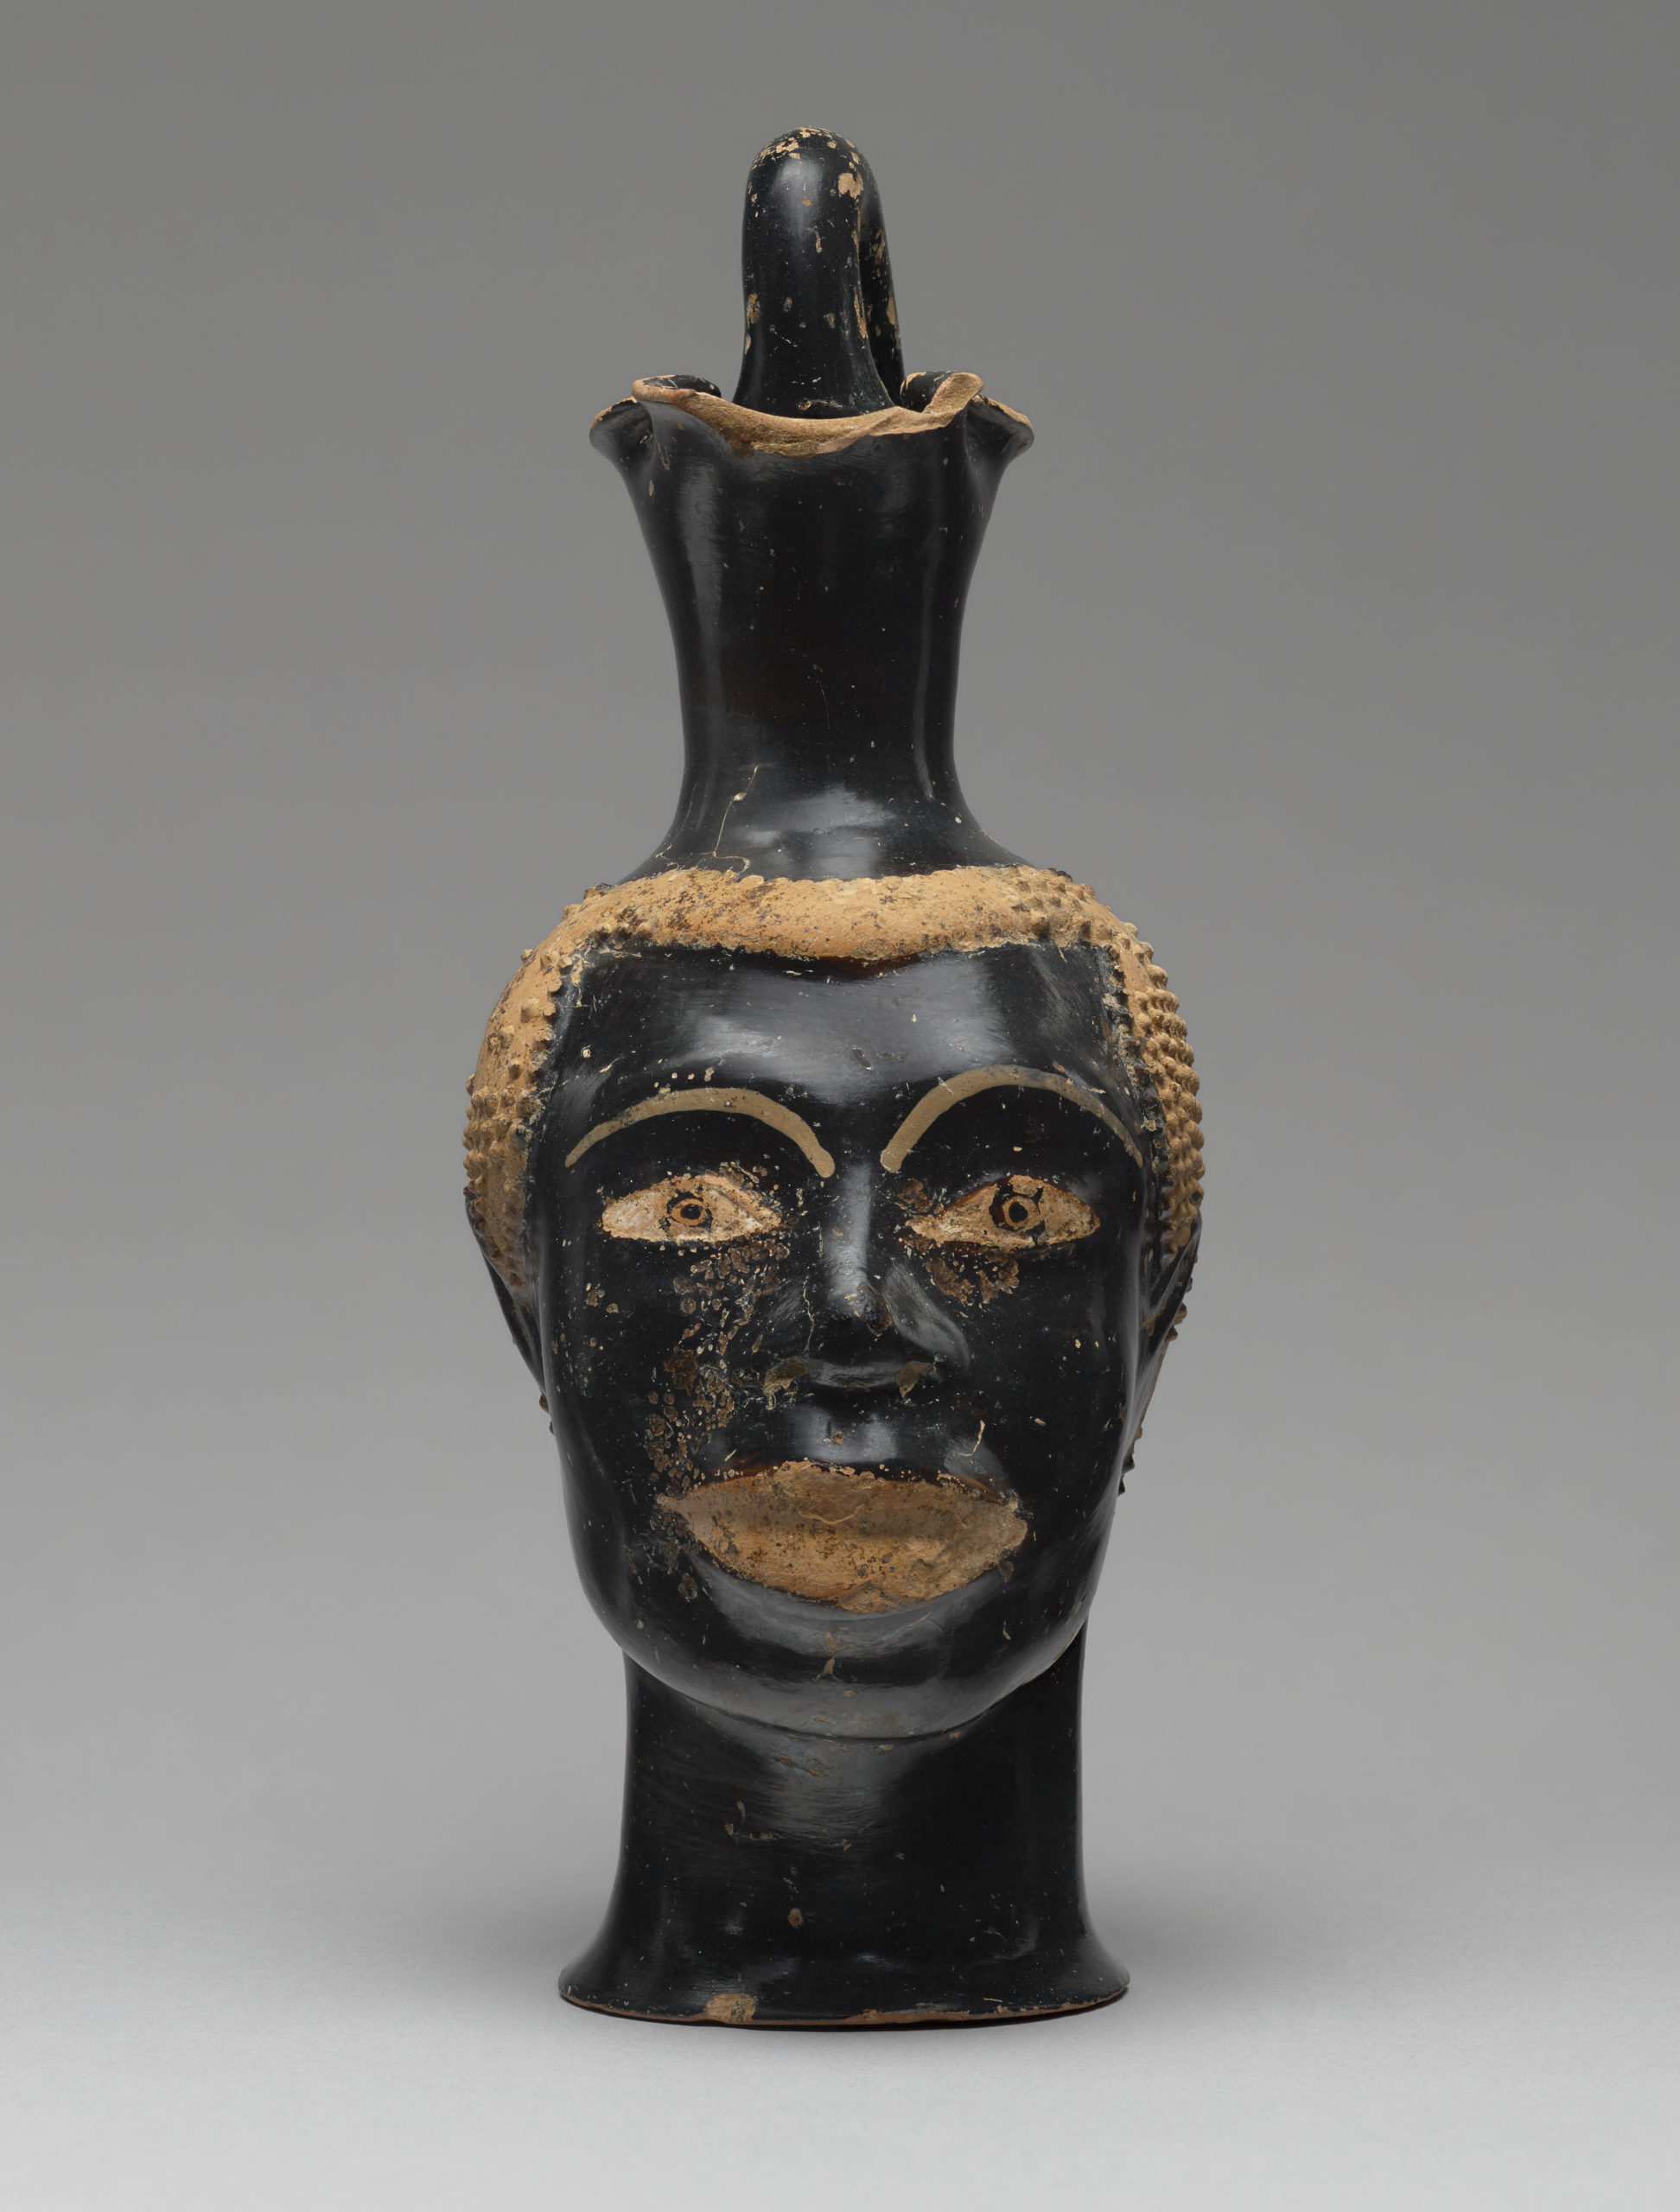 Pitcher (Oinochoe) in the Form of the Head of an African, about 510 B.C.E., attributed to Class B bis: Class of Louvre H 62. Terracotta, 8 7/16 inches high (The J. Paul Getty Museum, 83.AE.229. Digital image courtesy of the Getty's Open Content Program)